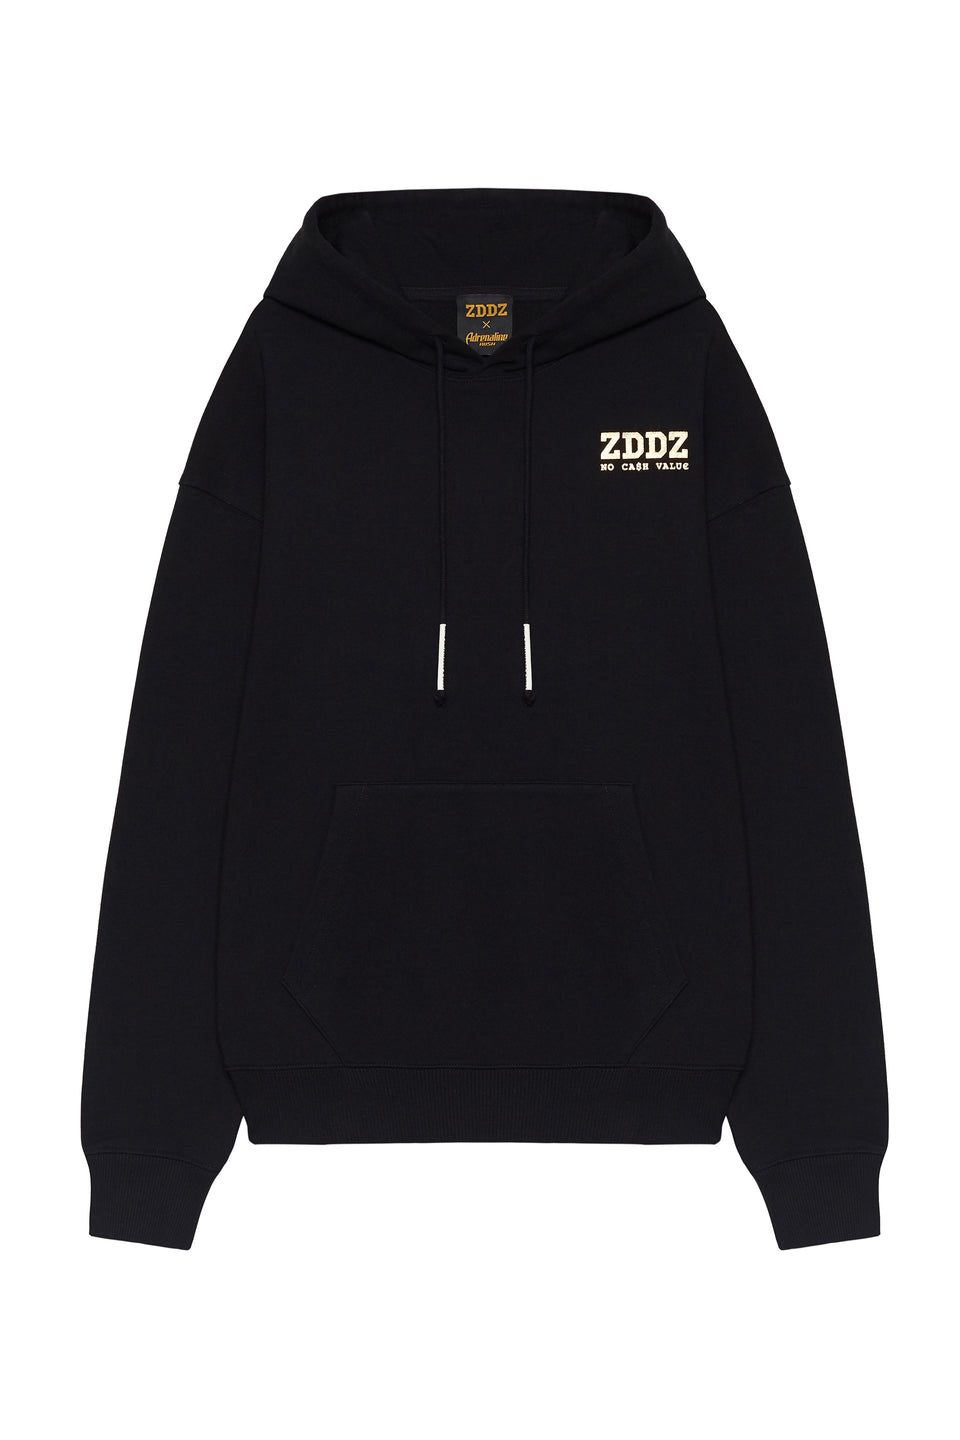 Hoody Unisex ZDDZ 'No cash value' - ZDDZ x Adrenaline Rush Collaboration